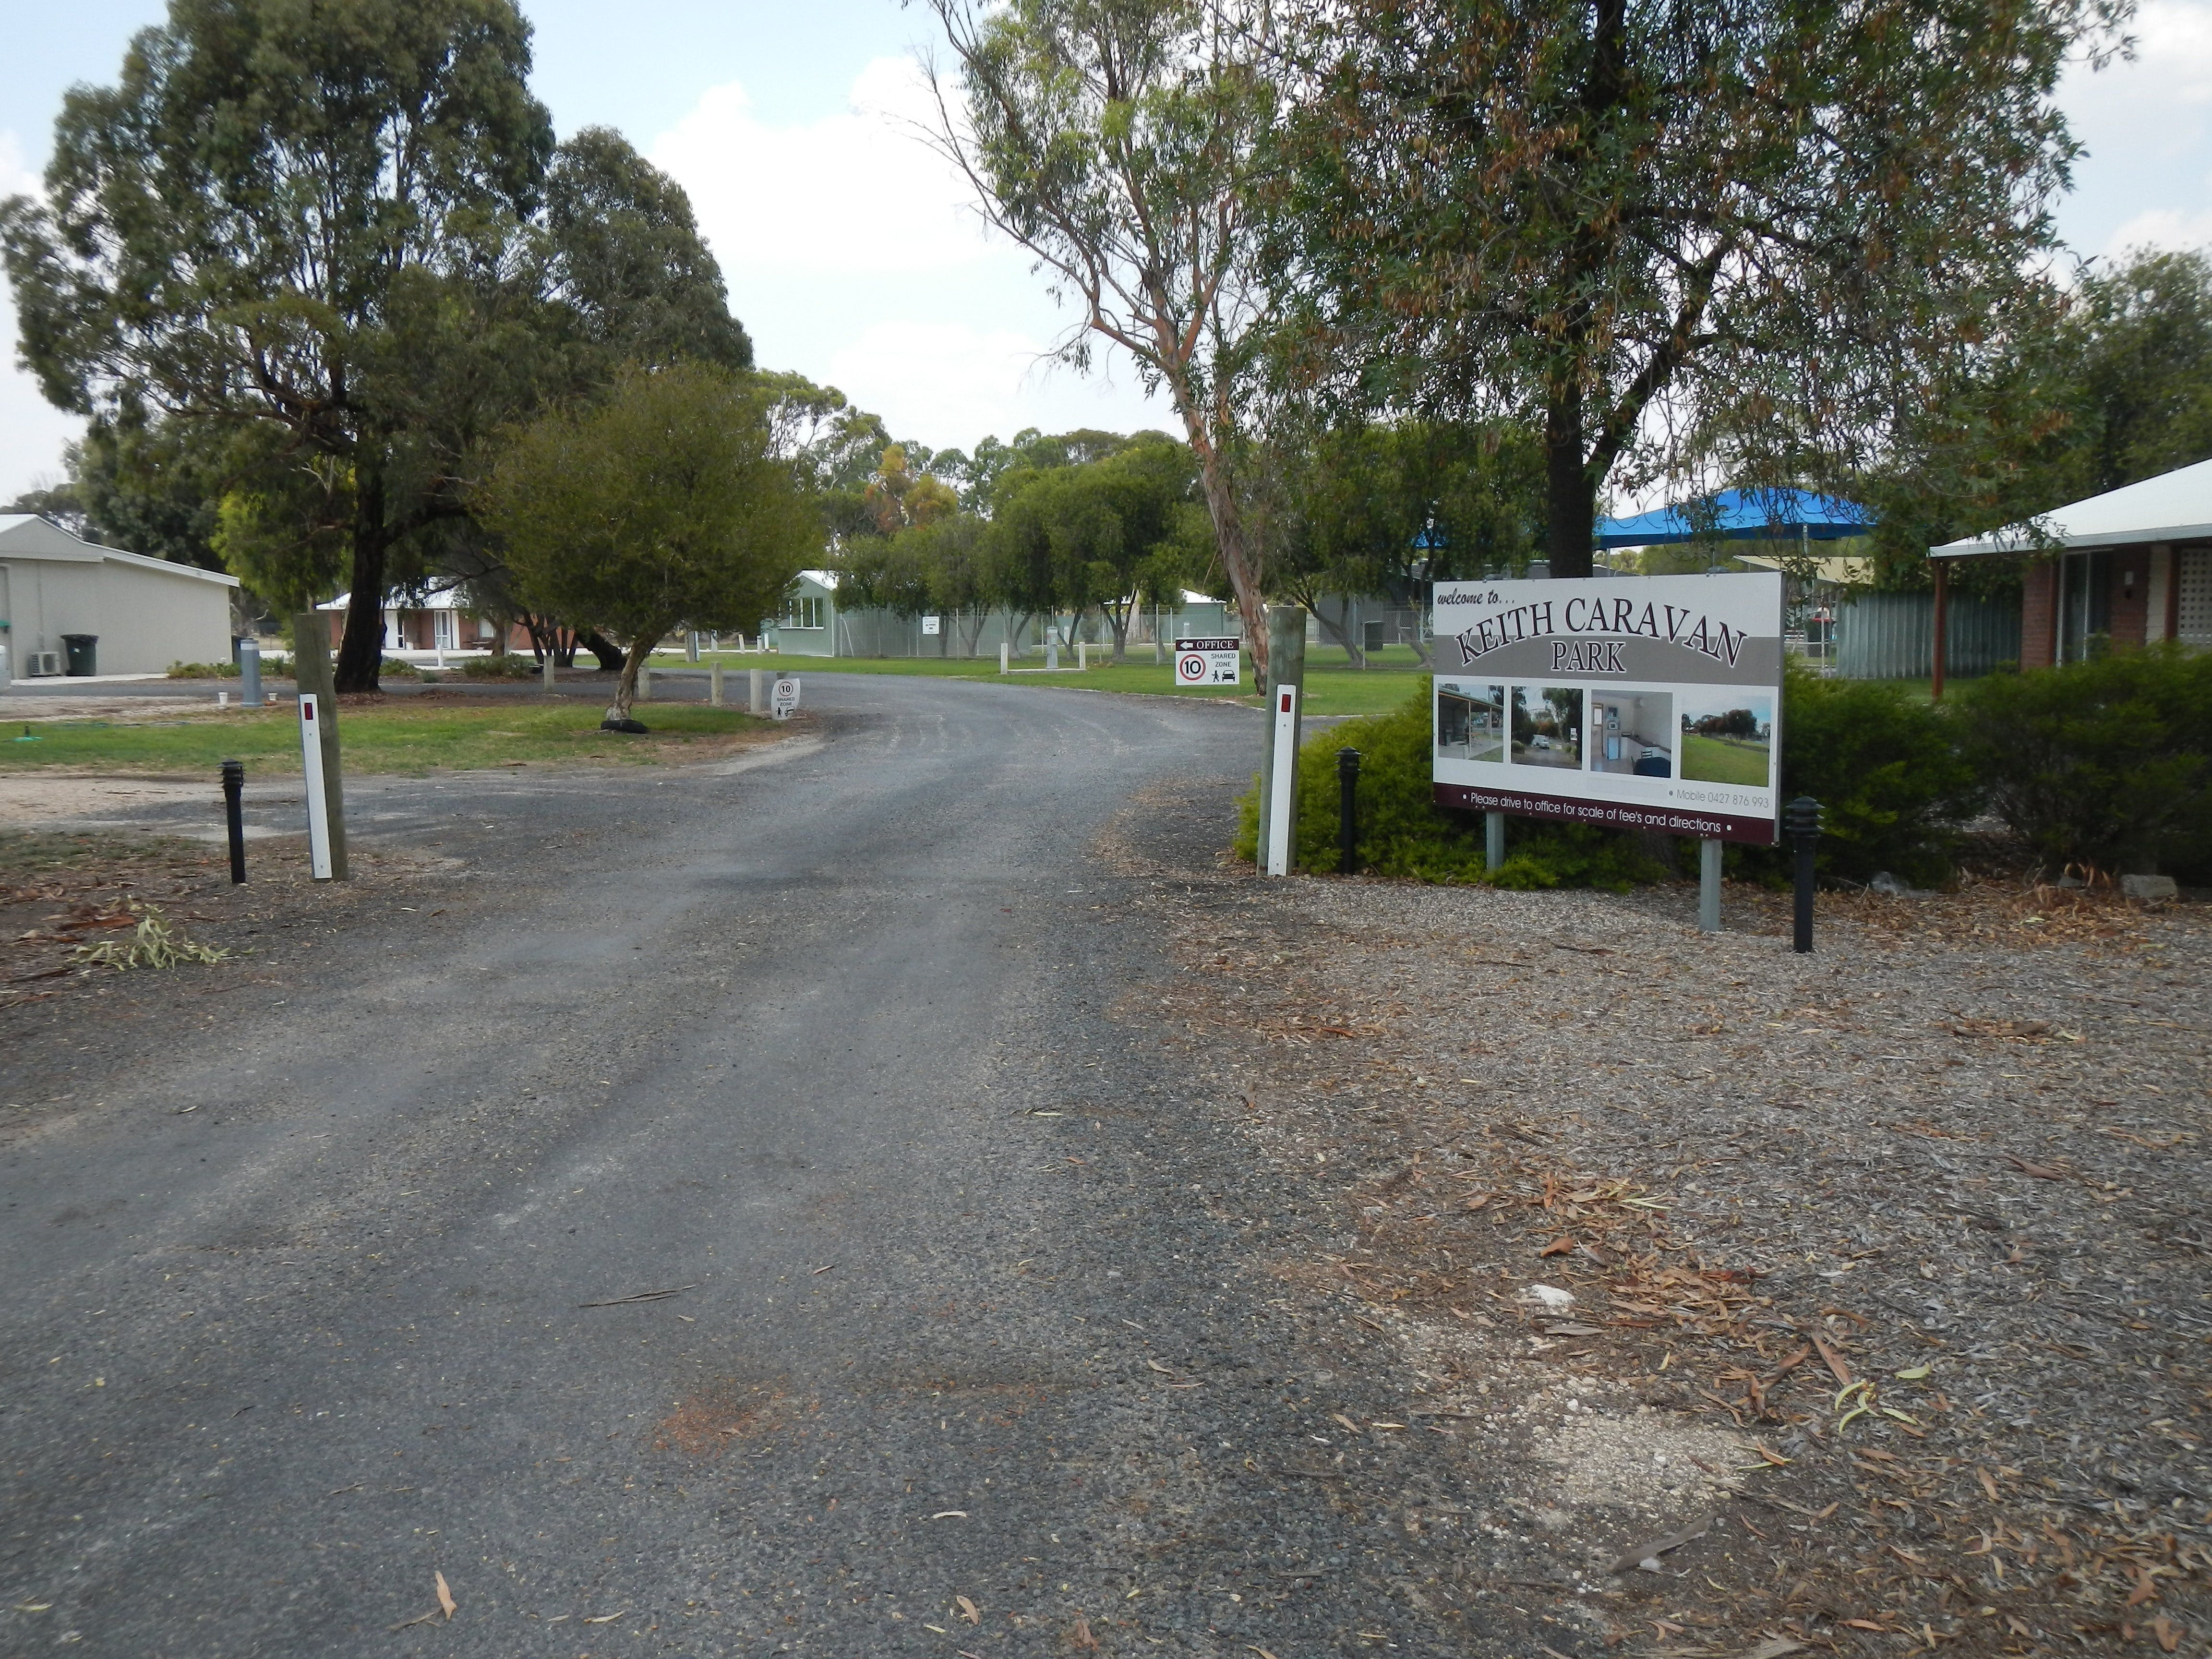 Keith Caravan Park Inc. - Accommodation in Surfers Paradise